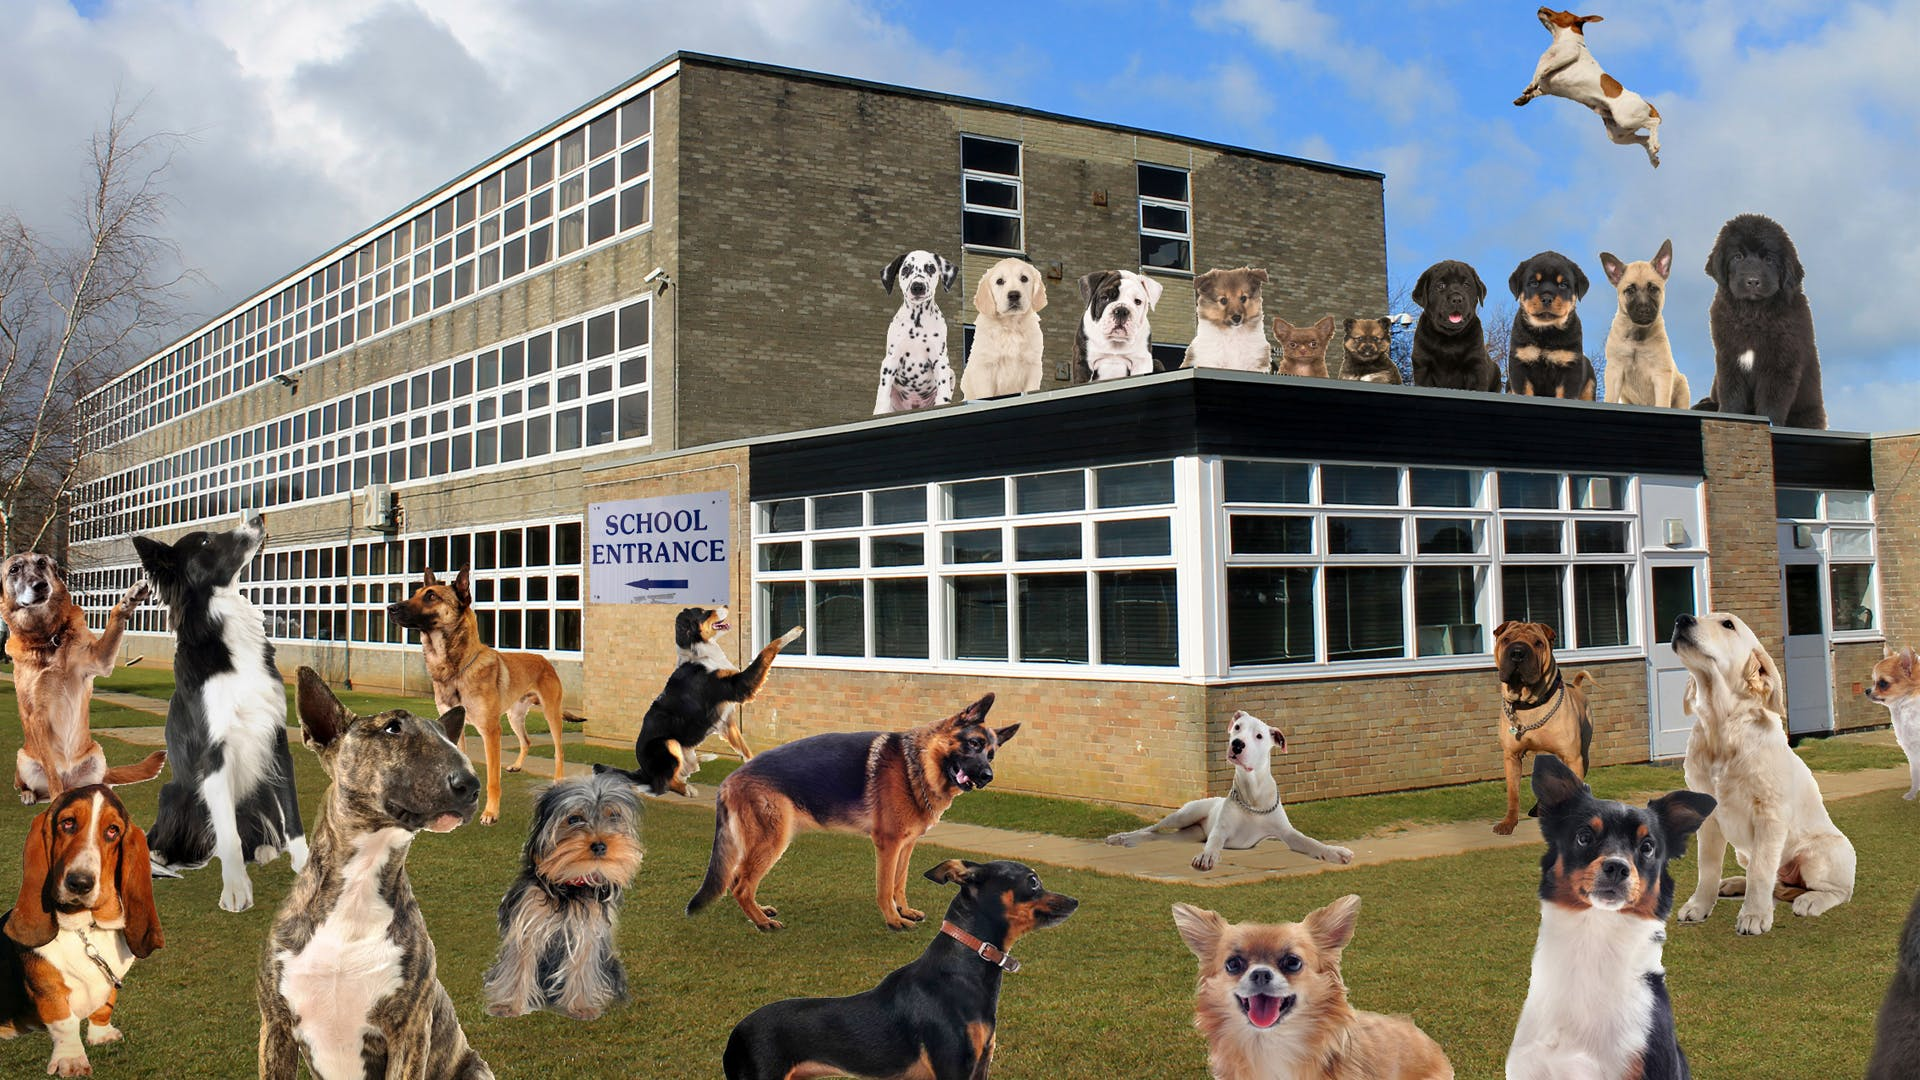 Loads of dogs at a school